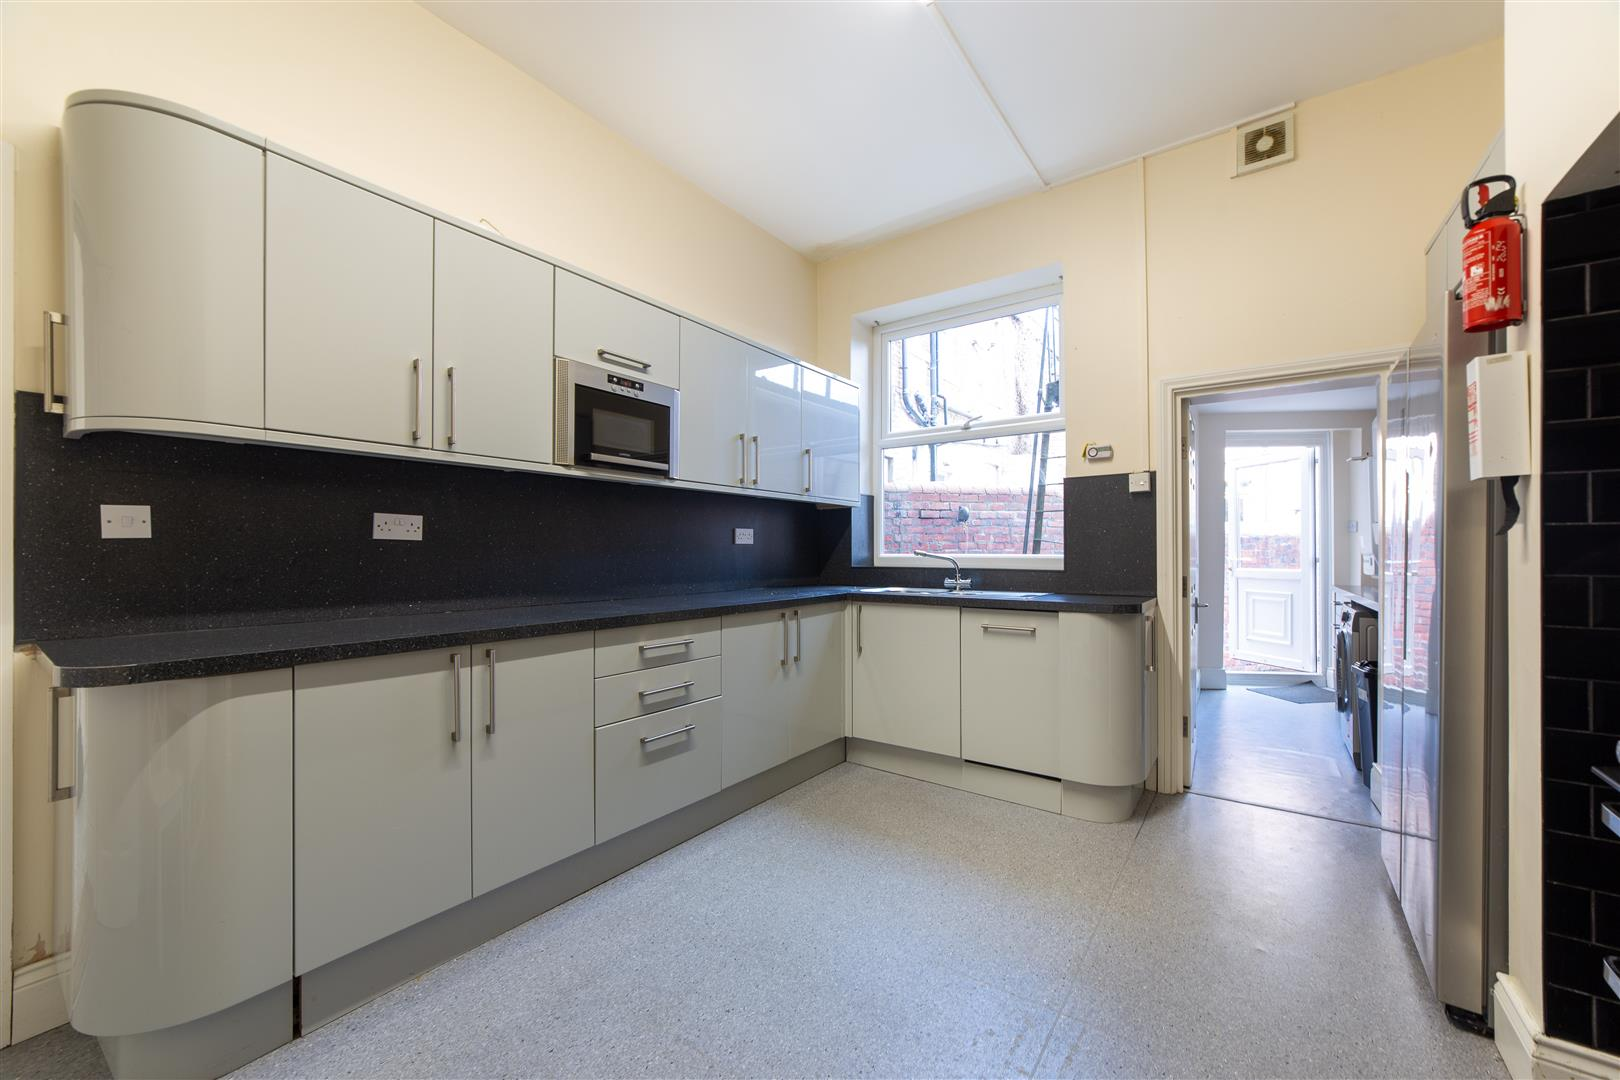 8 bed terraced house to rent in Newcastle Upon Tyne, NE2 1JS  - Property Image 1